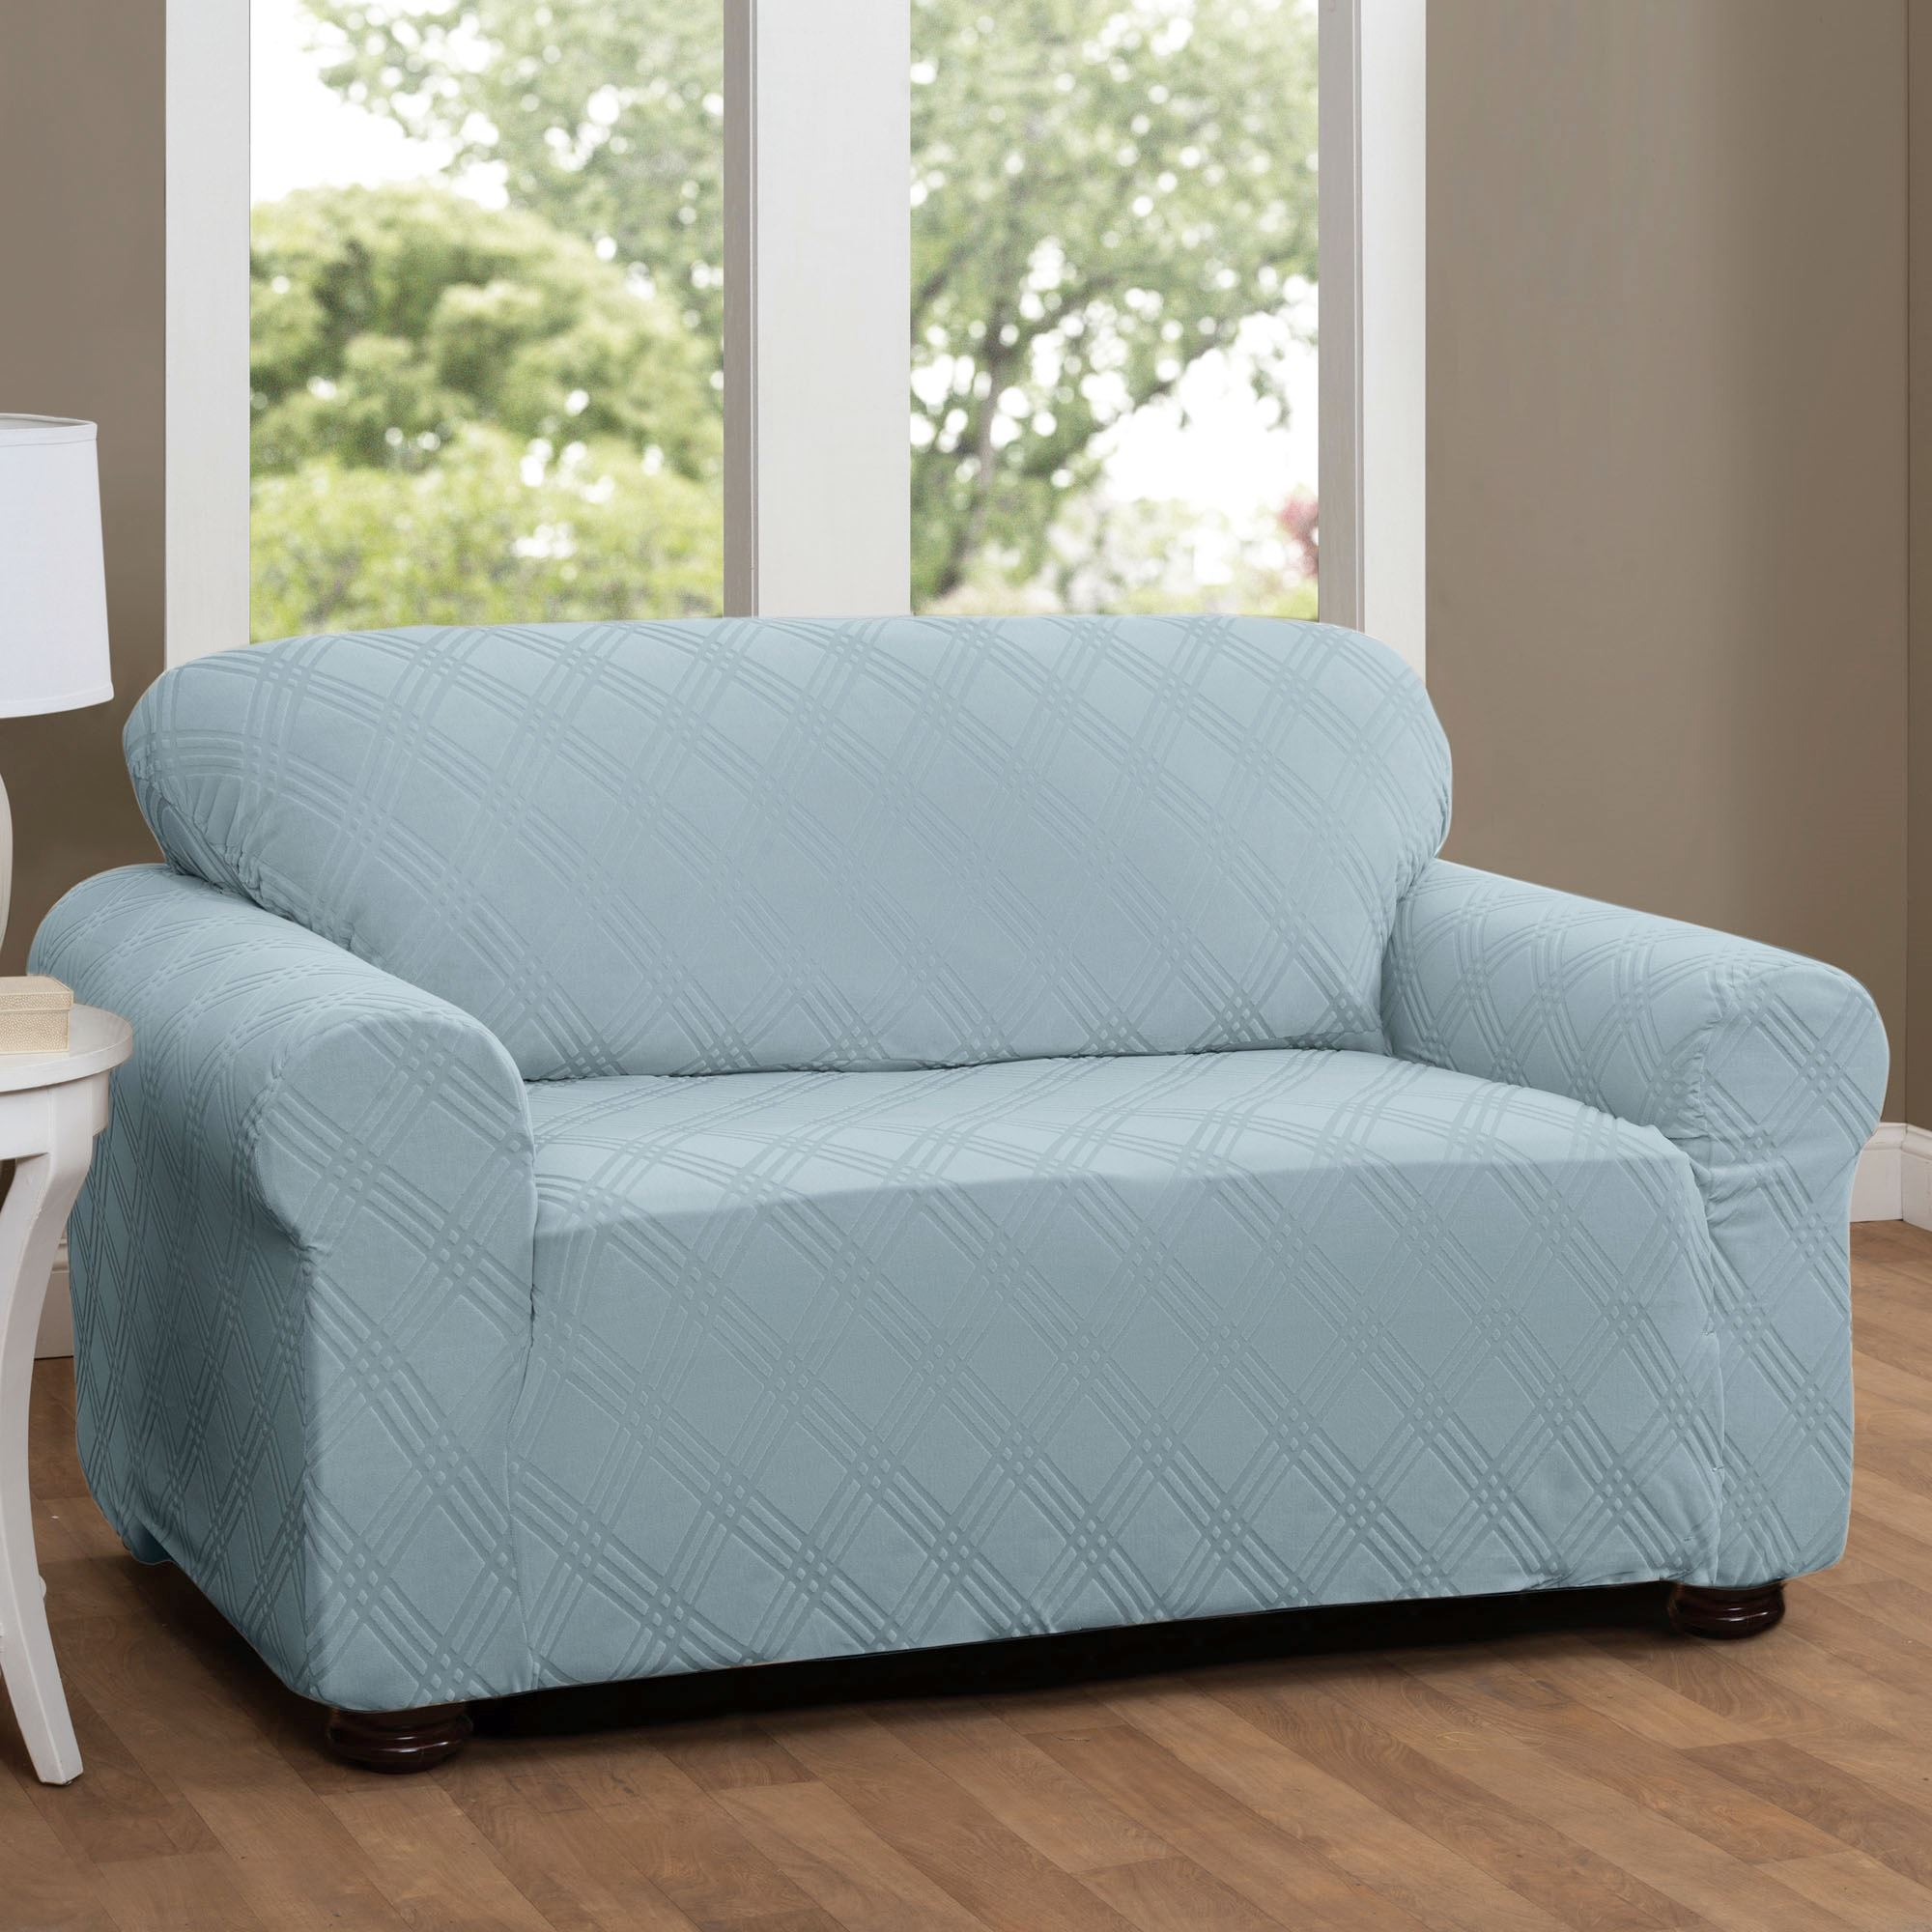 Delicieux Double Diamond Stretch Slipcover Loveseat